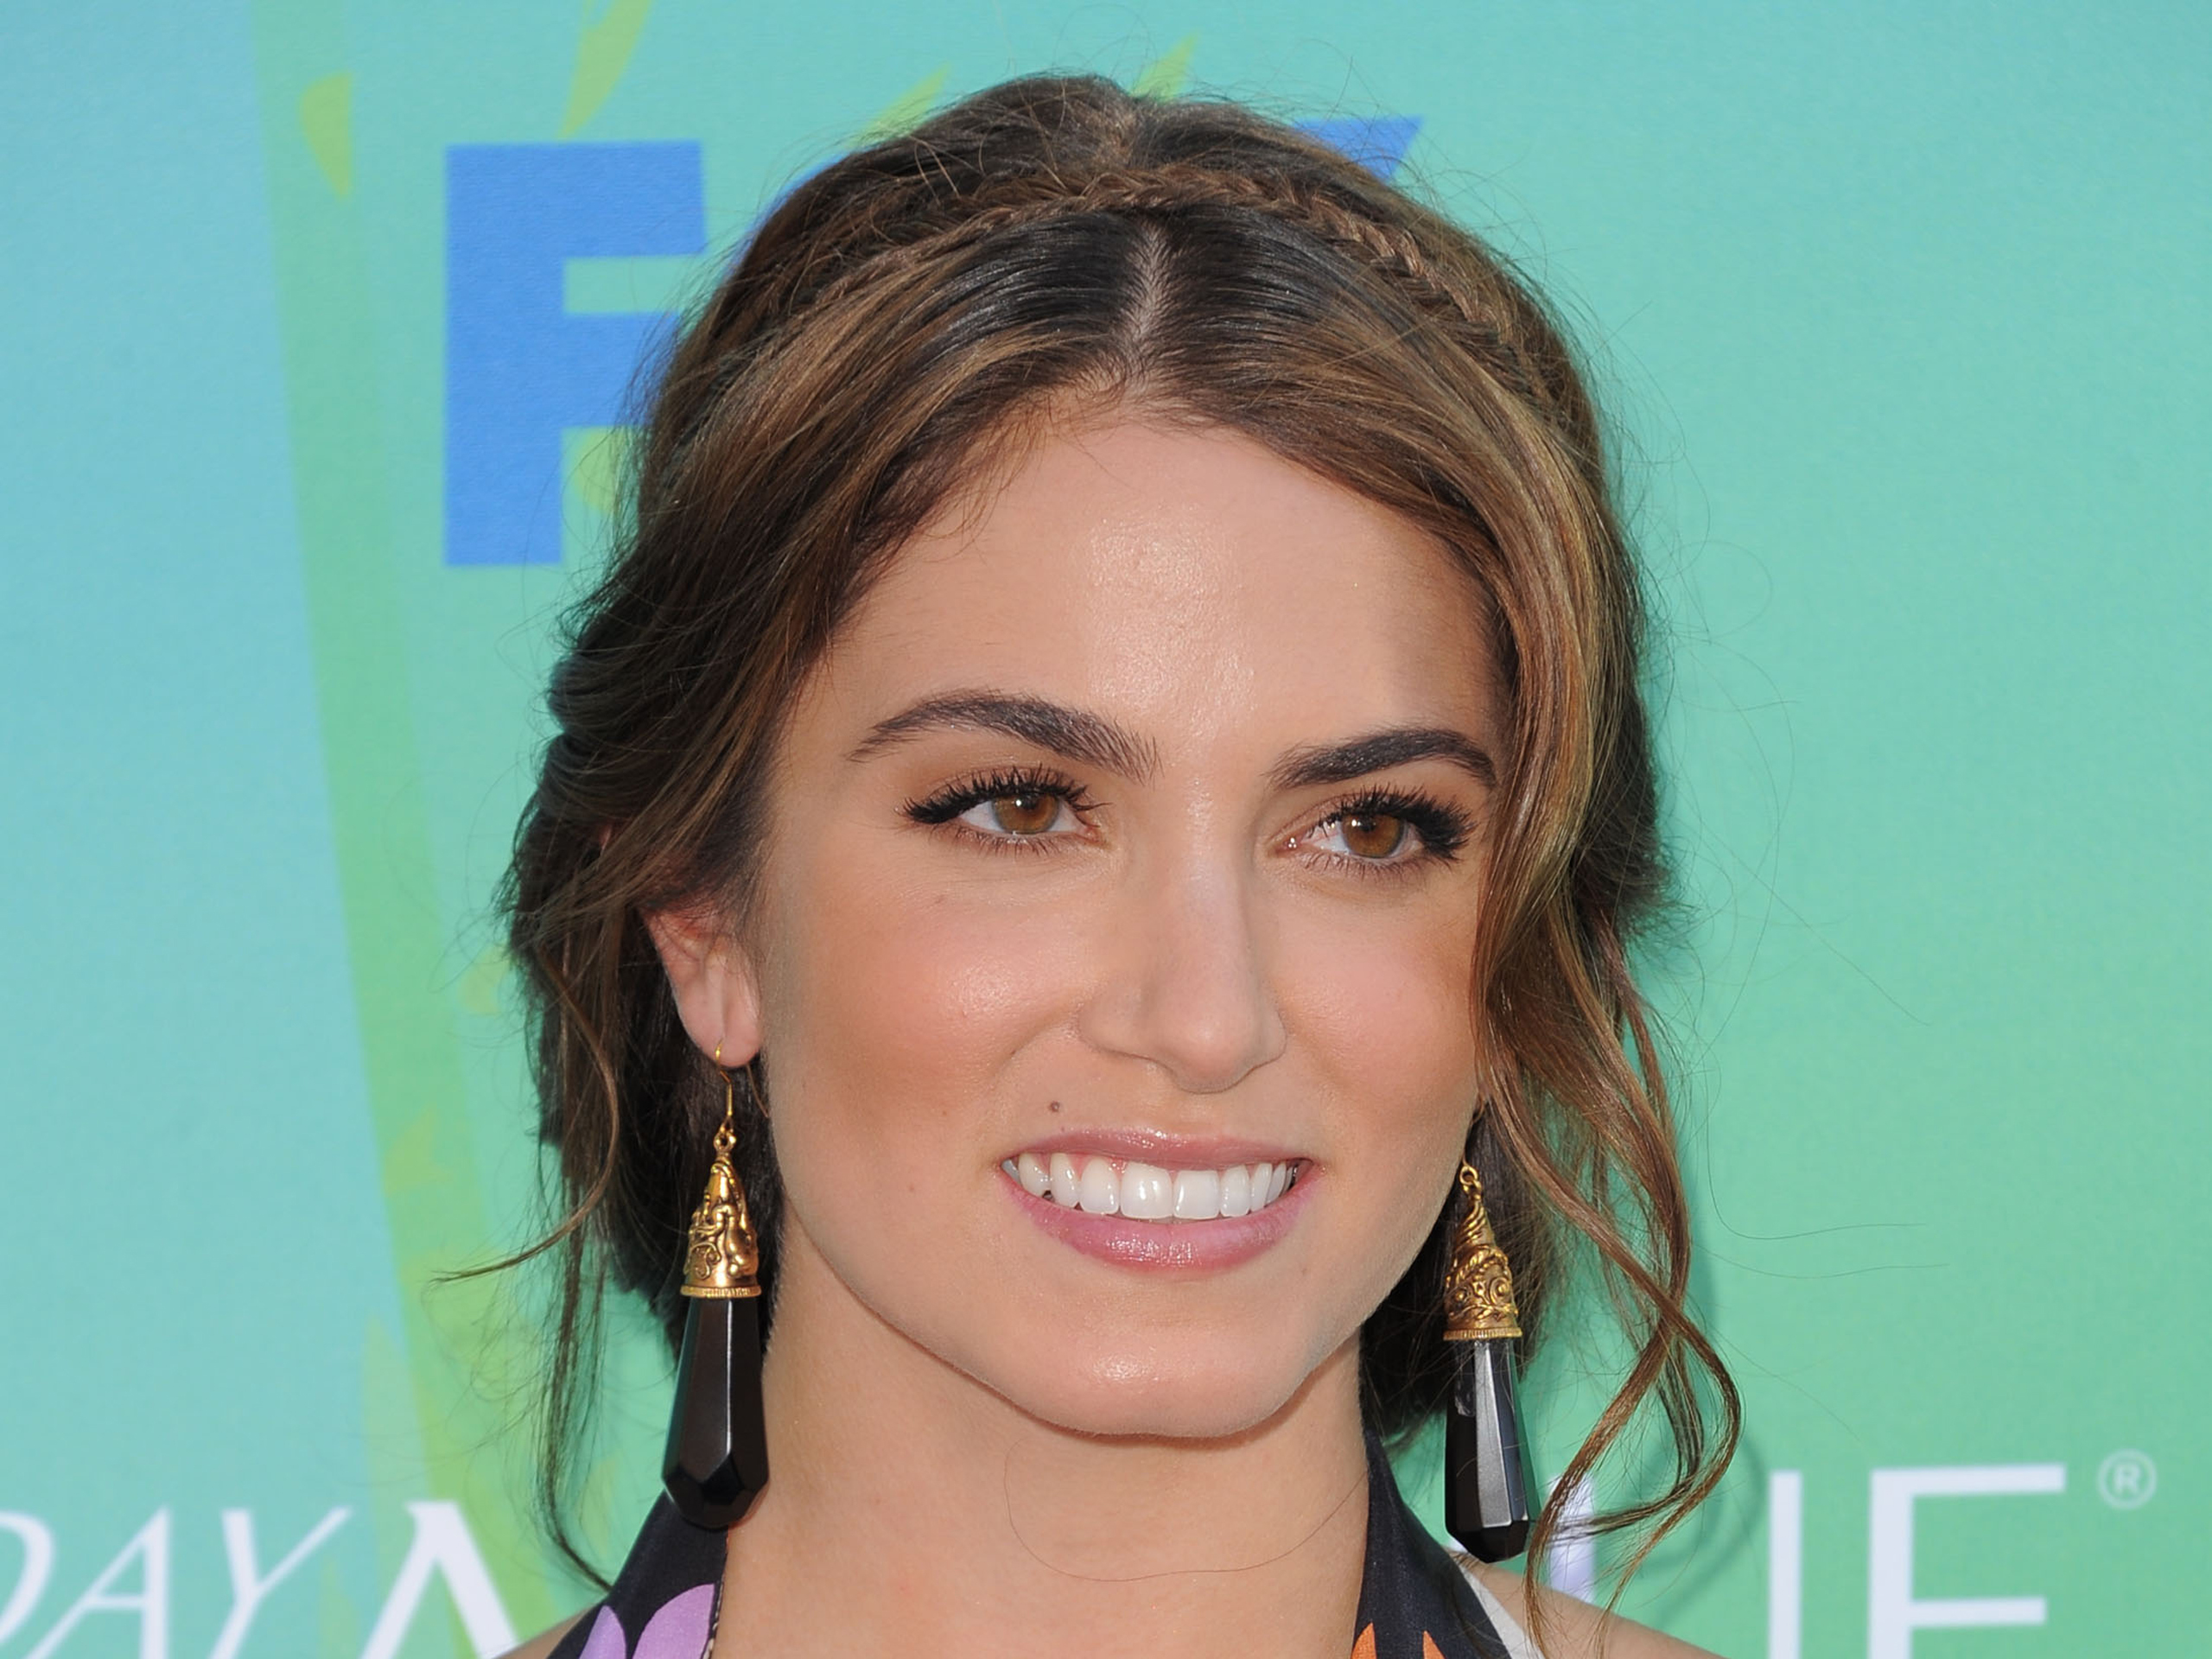 Pictures Of Nikki Reed